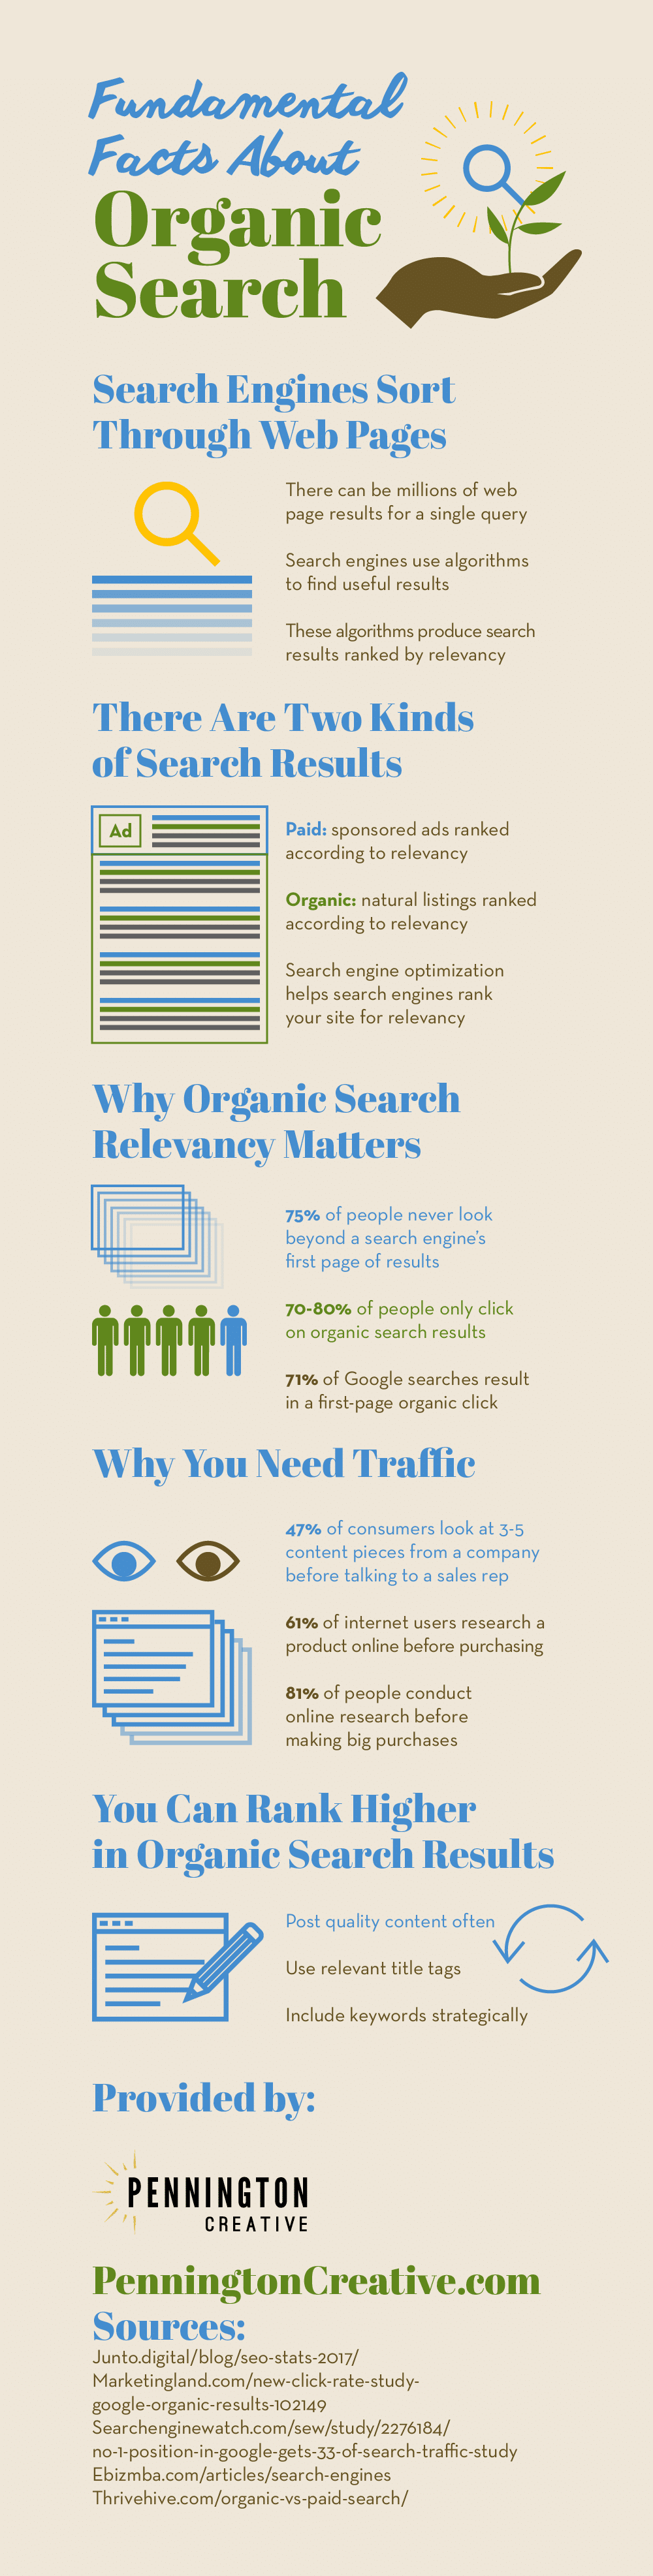 Infographic about SEO and organic search rankings.